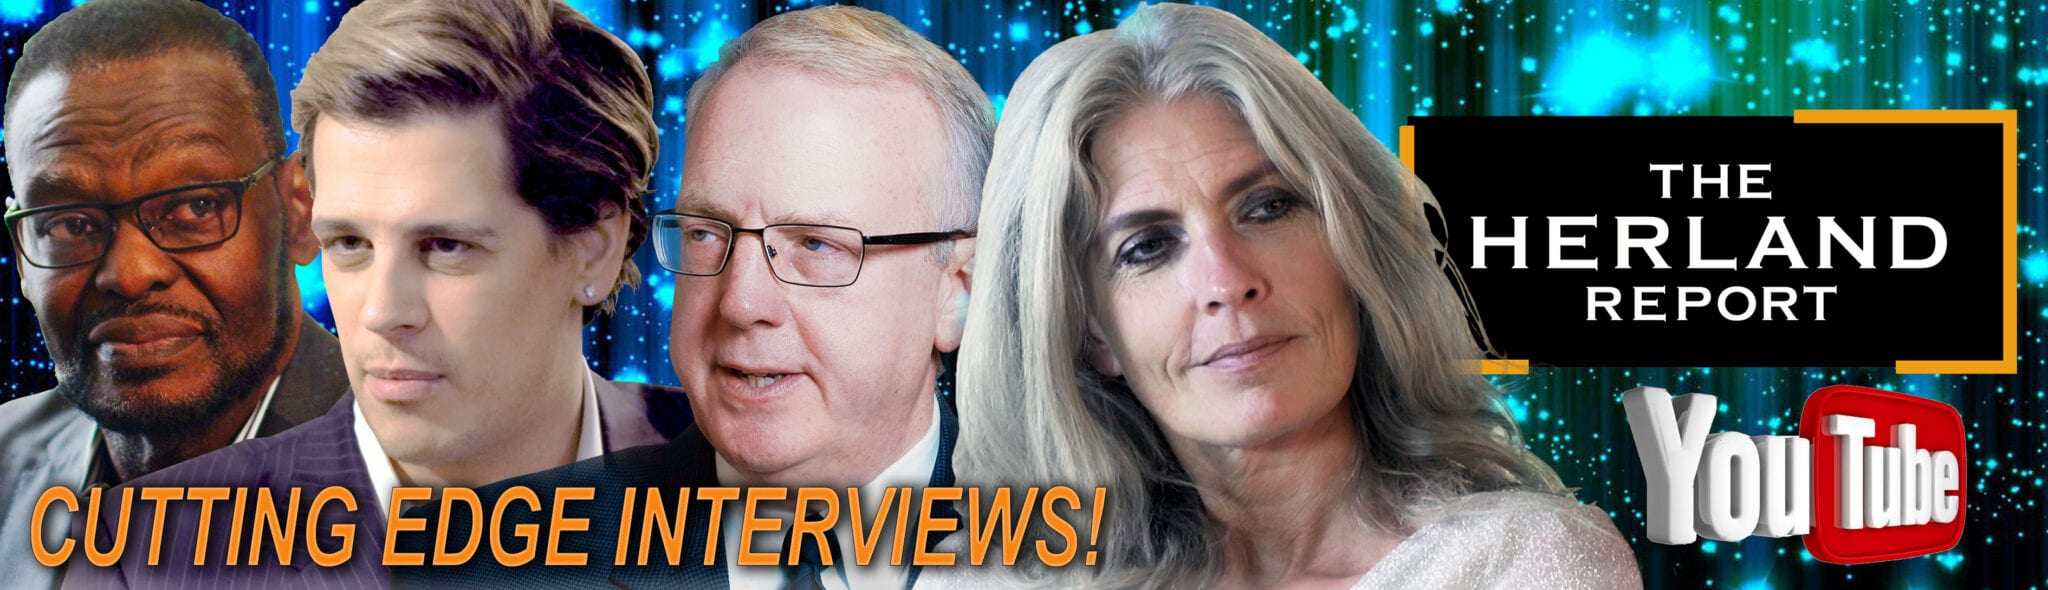 Subscribe to Herland Report TV with leading intellectuals